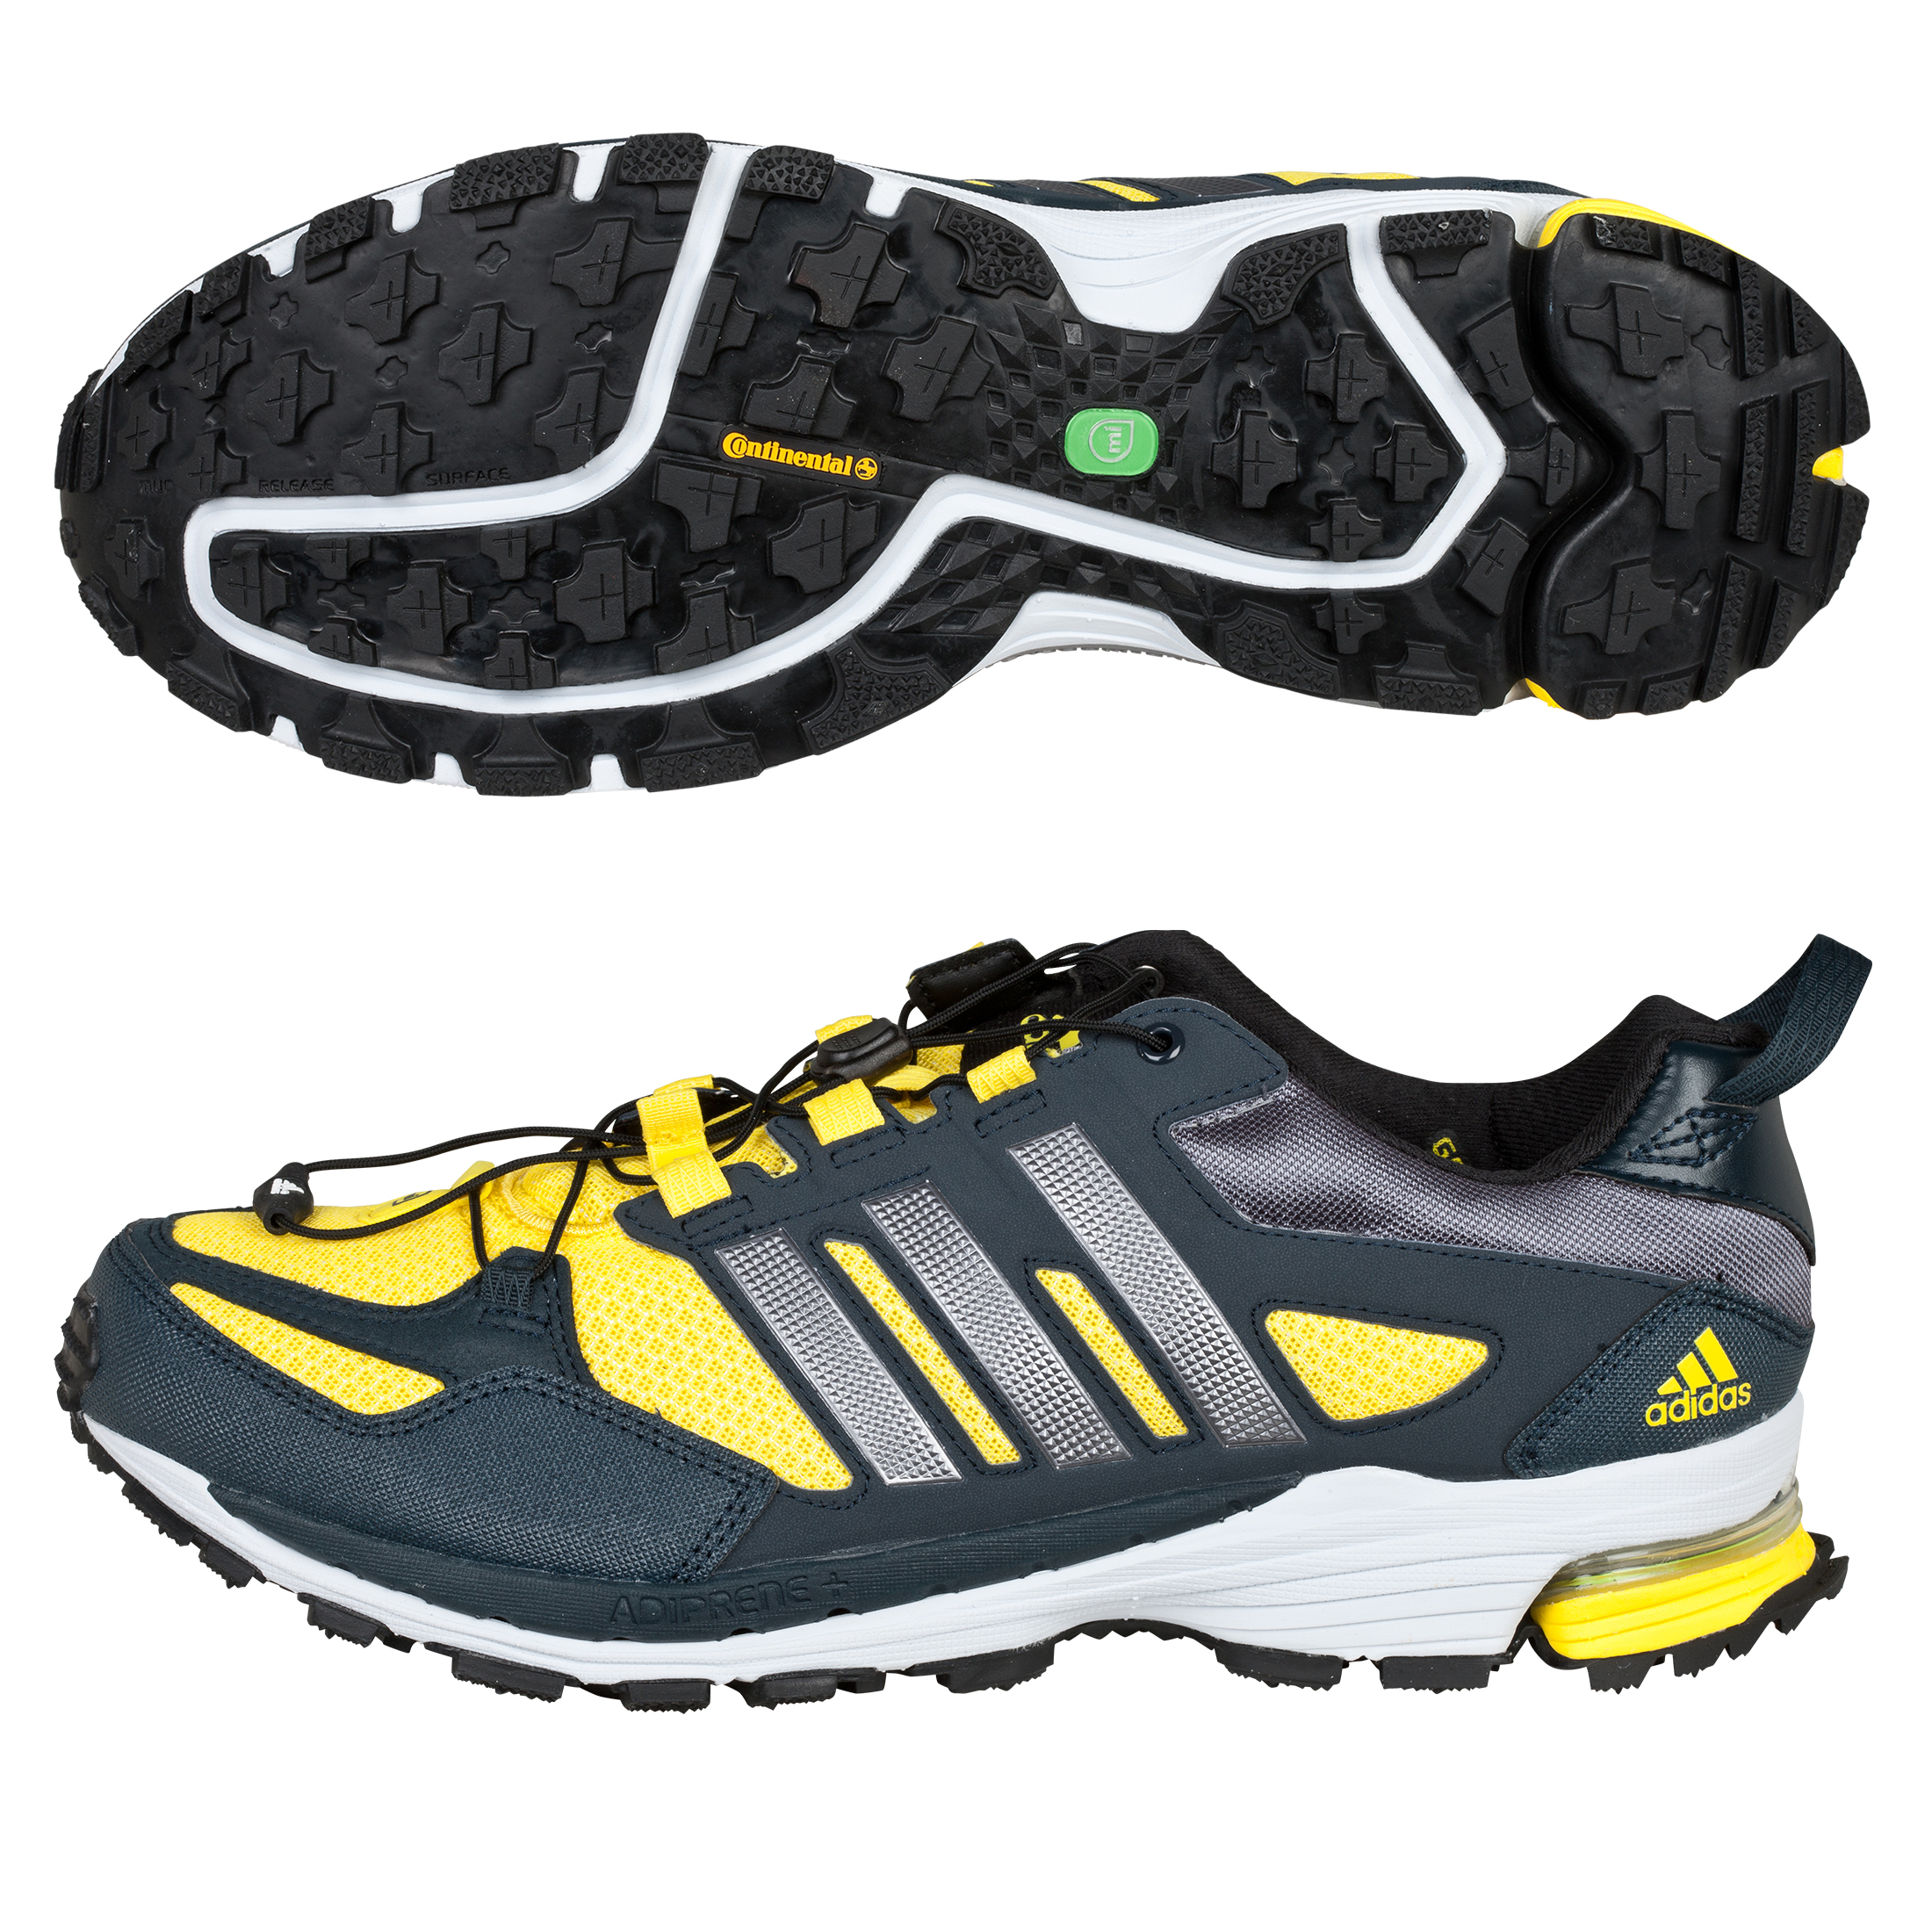 Adidas Supernova Riot 5 Running Trainers - Vivid Yellow/Neo Iron/Tech Onix